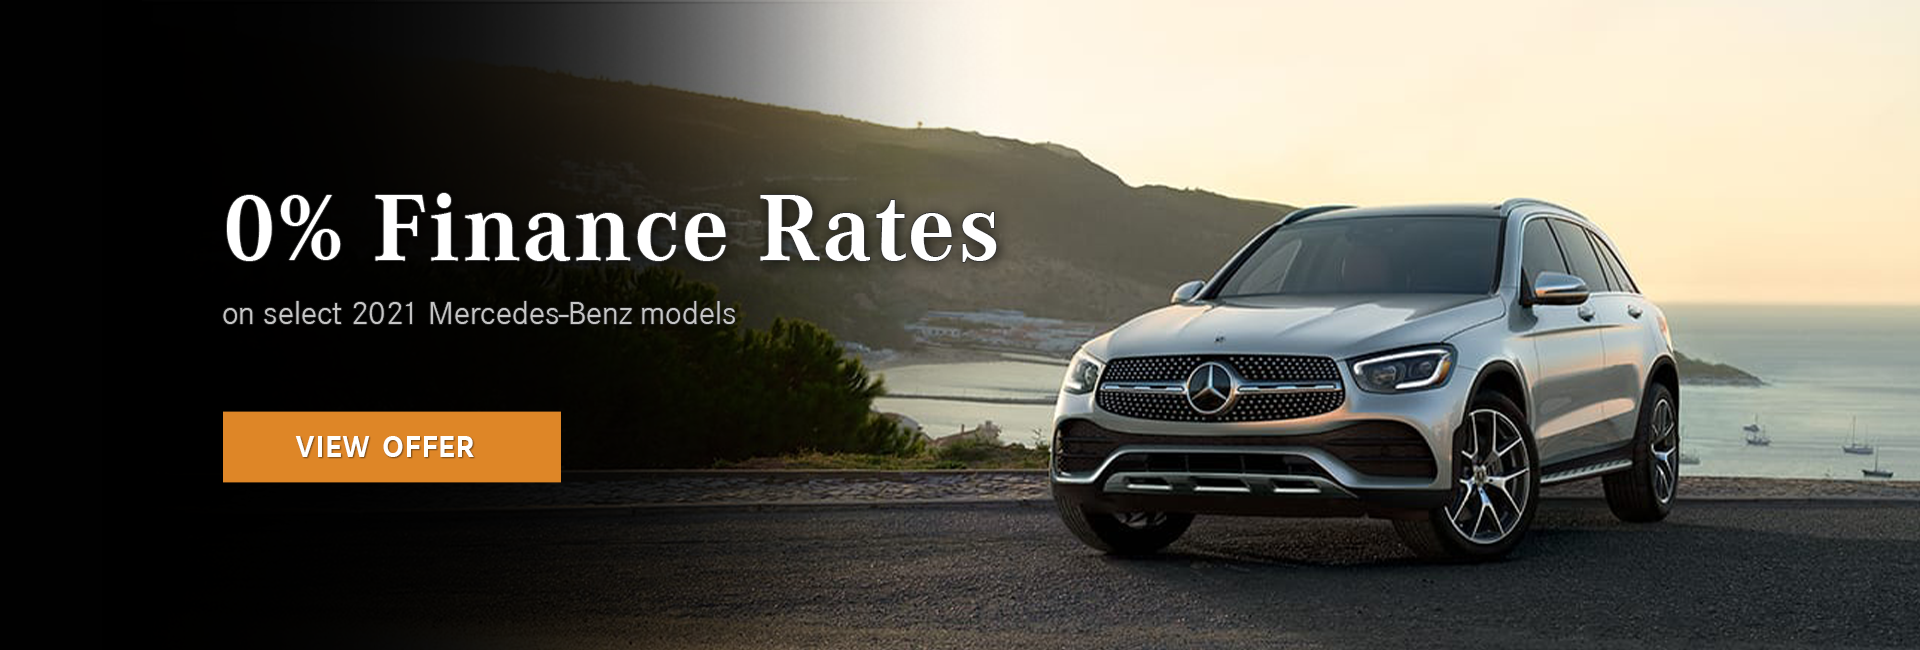 GLC 0 Financing Slider